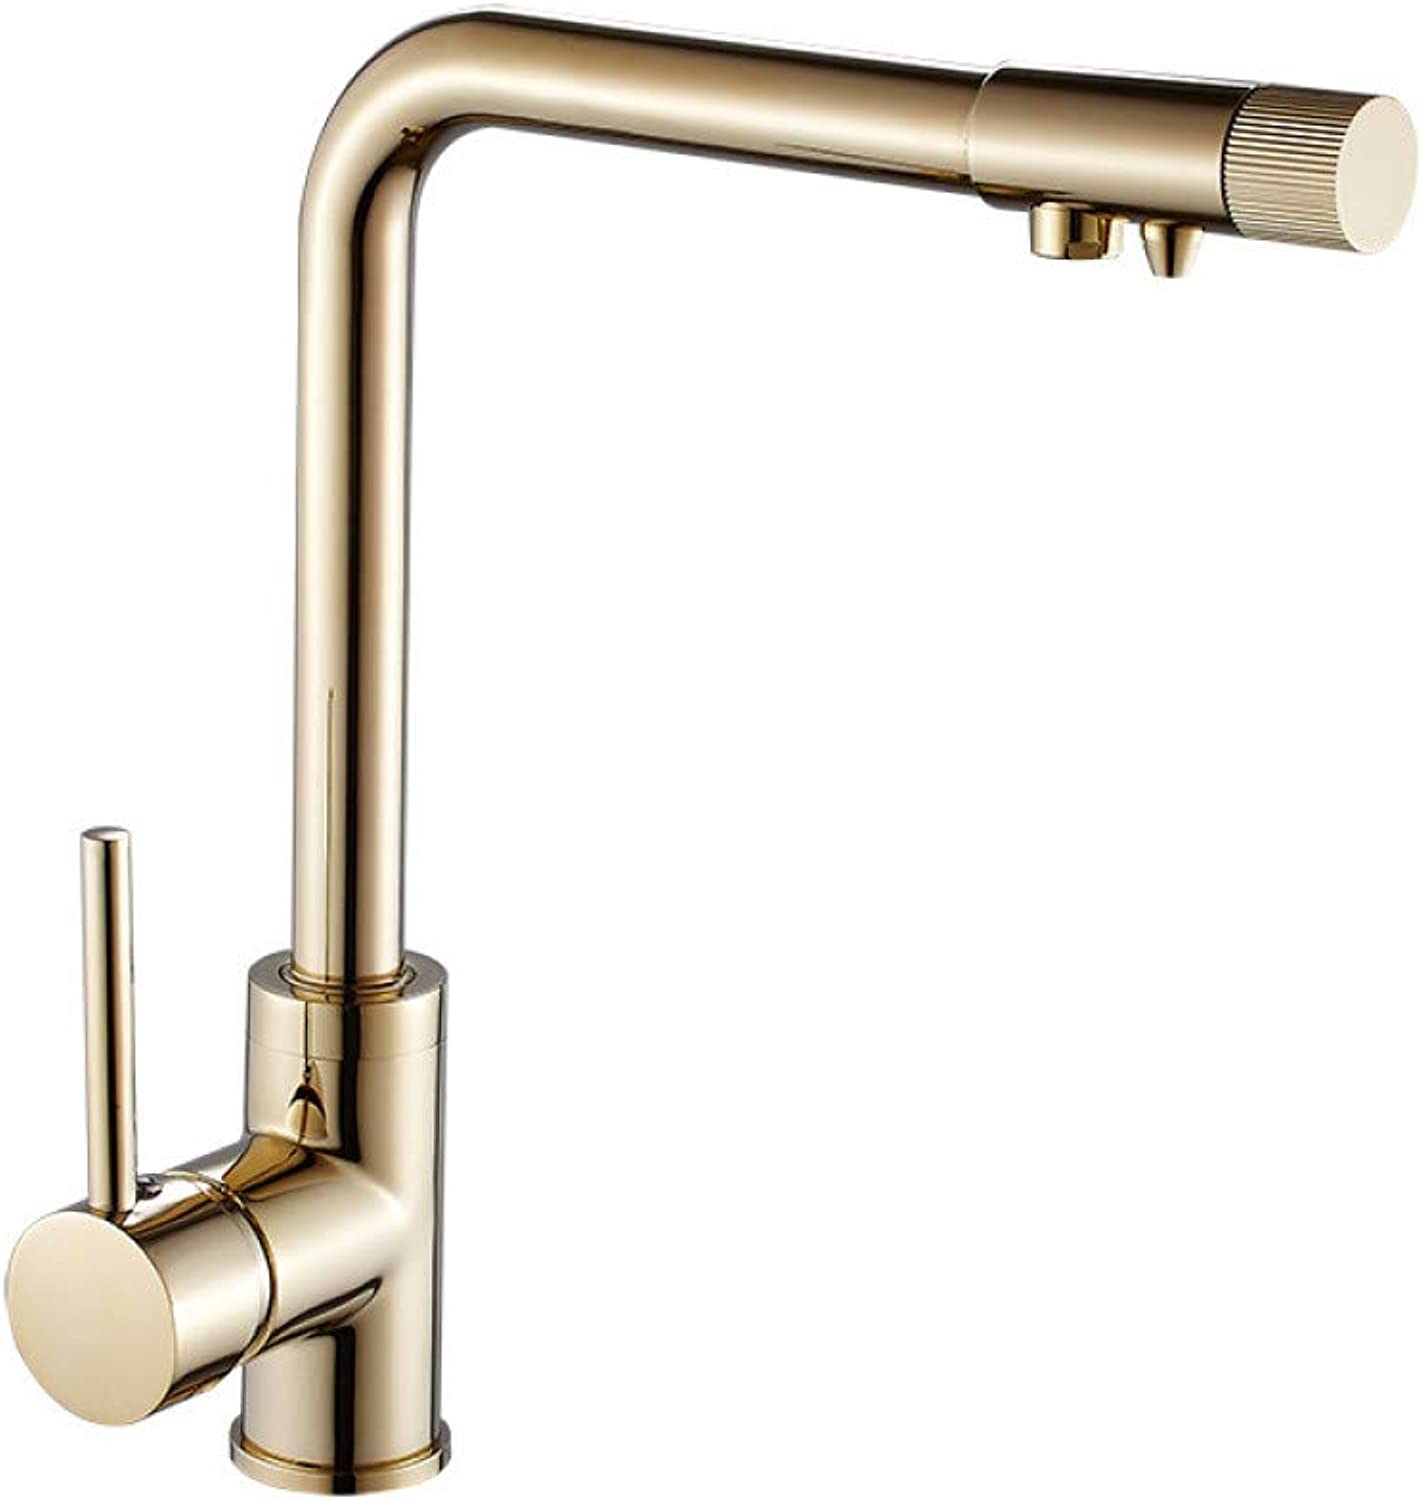 YHSGY Kitchen Taps Copper golden Hot and Cold Kitchen Water Purifier Double Faucet Sink redates Out of The Water